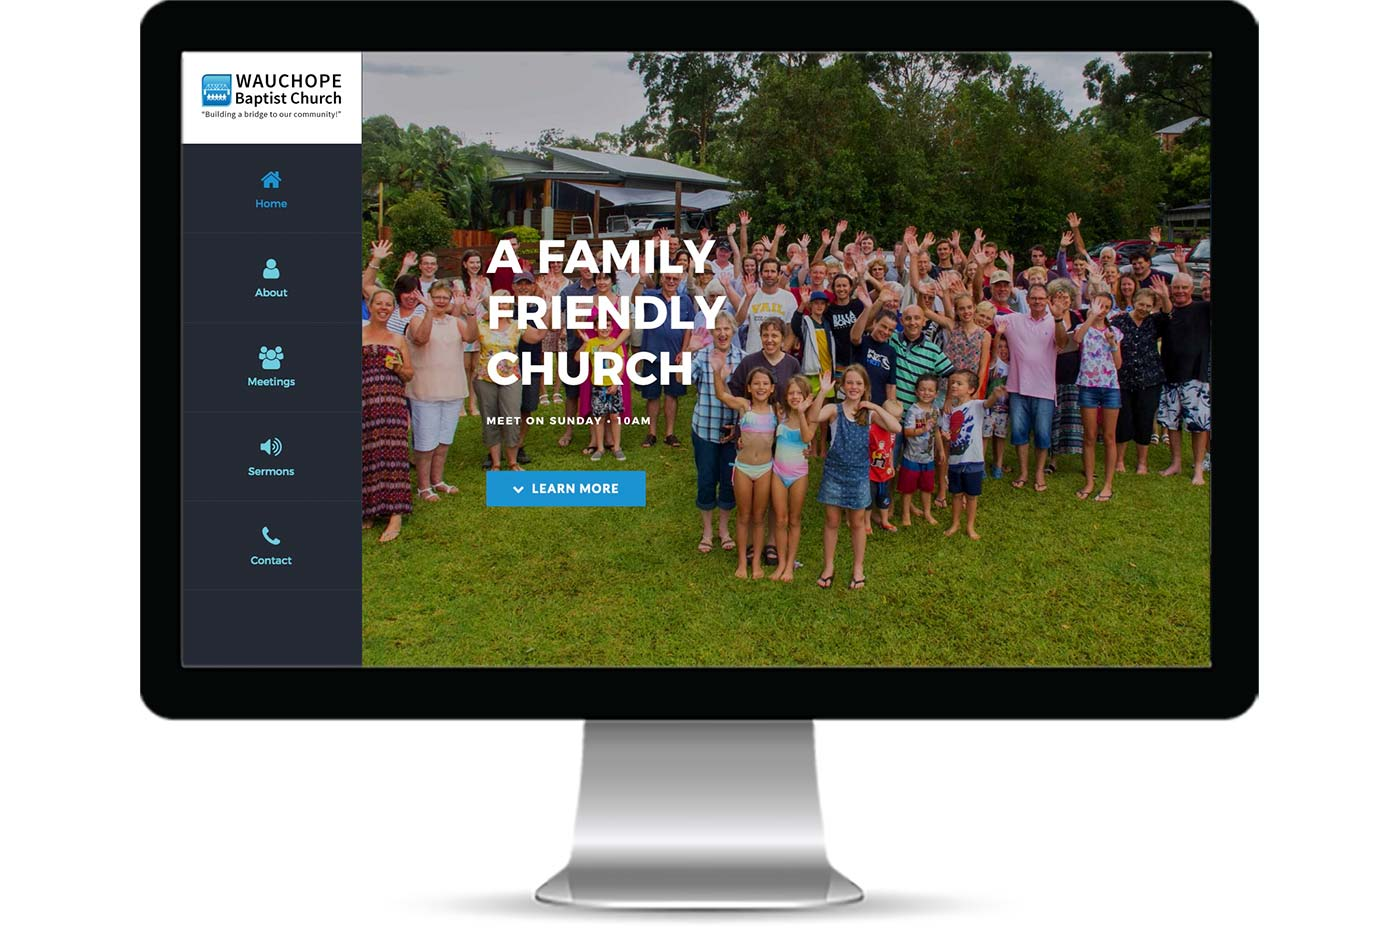 Advantage iT Solutions Web Portfolio - Wauchope Baptist Church